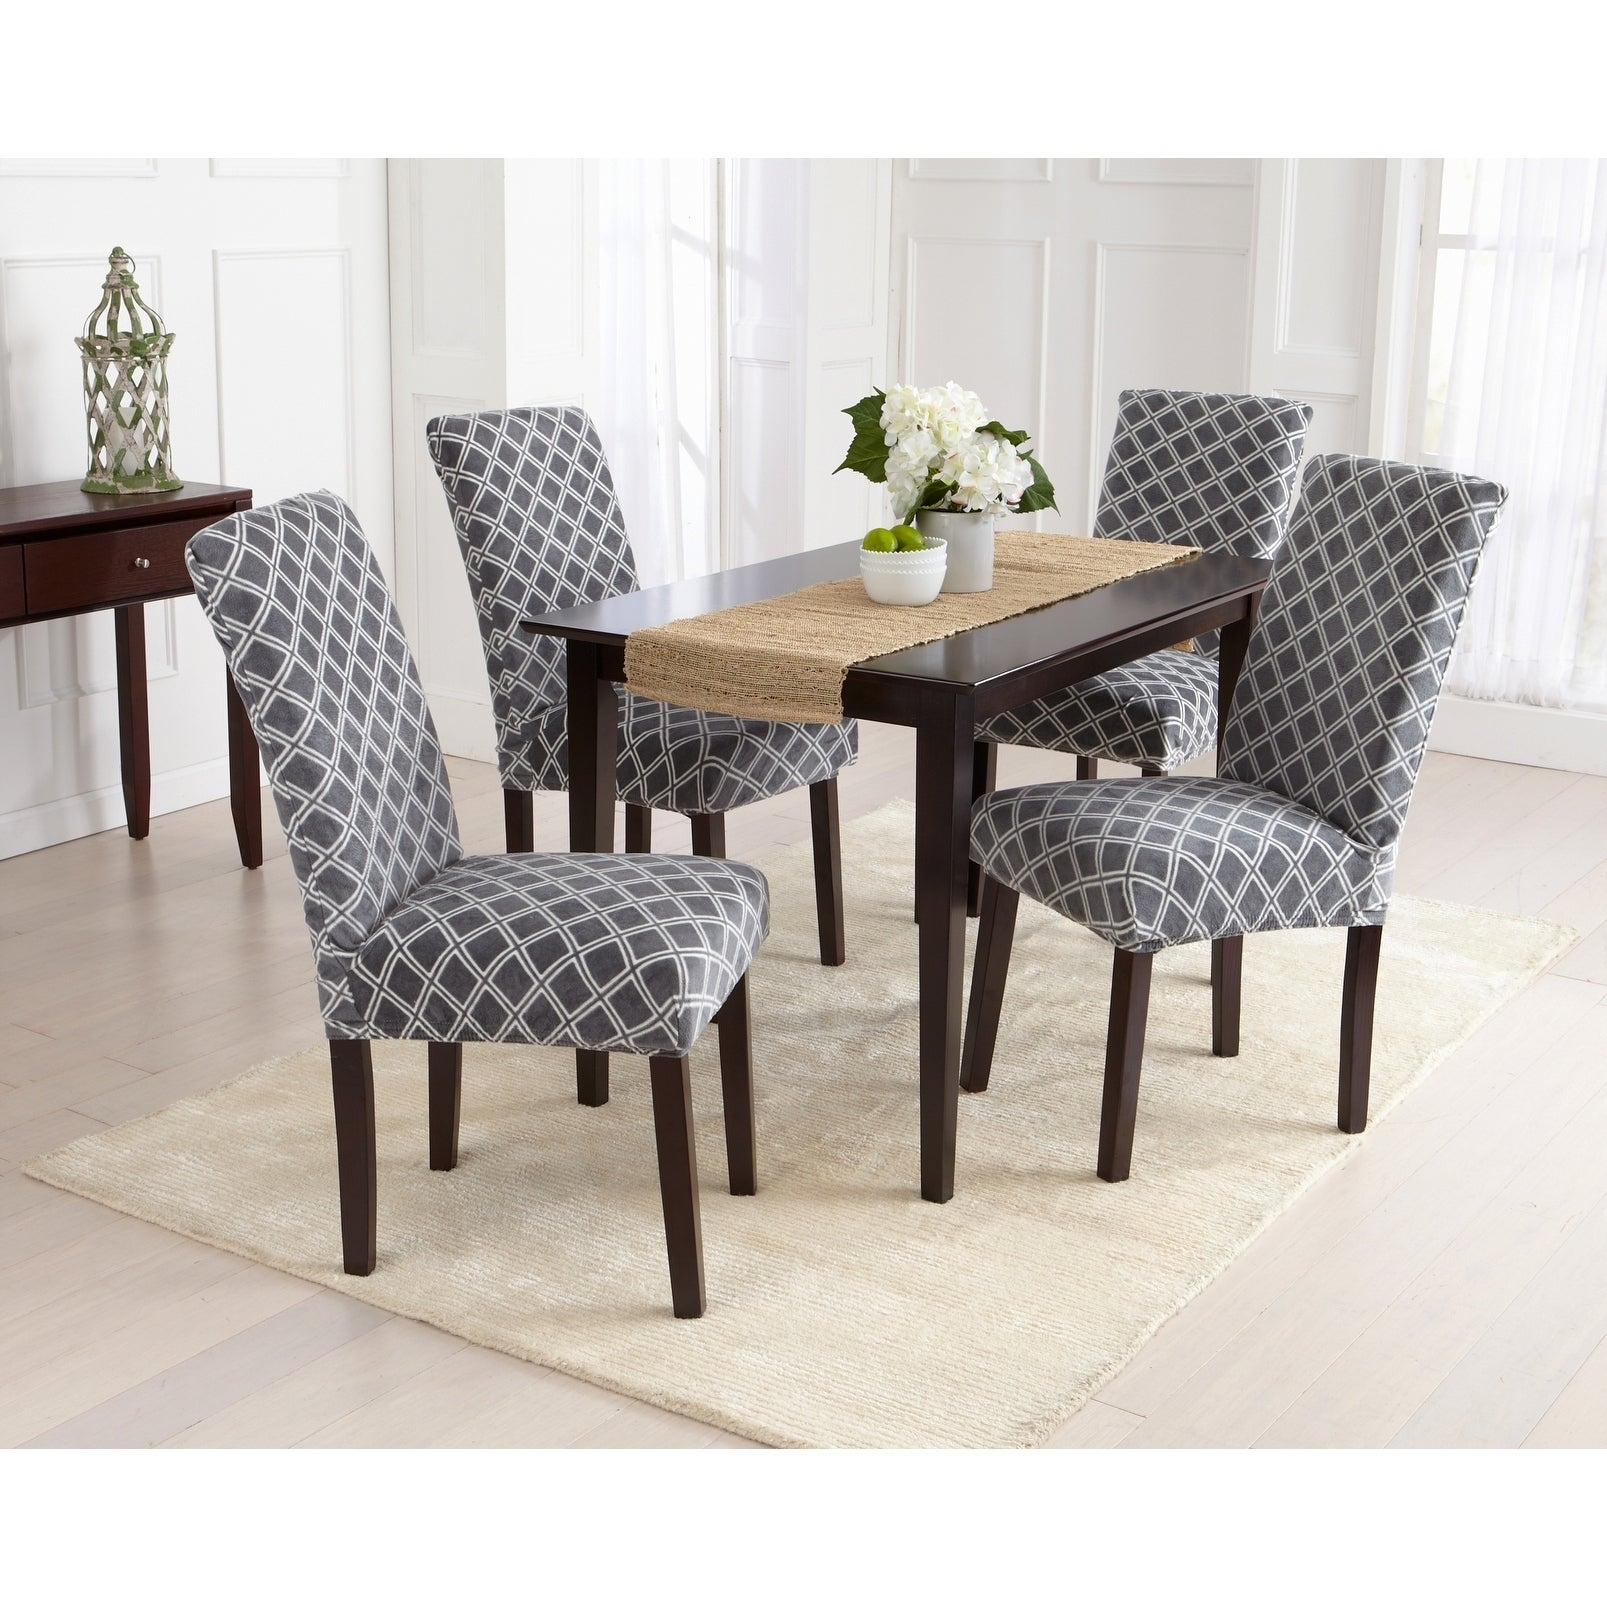 Great Bay Home 4 Pack Velvet Plush Printed Dining Room Chair Cover